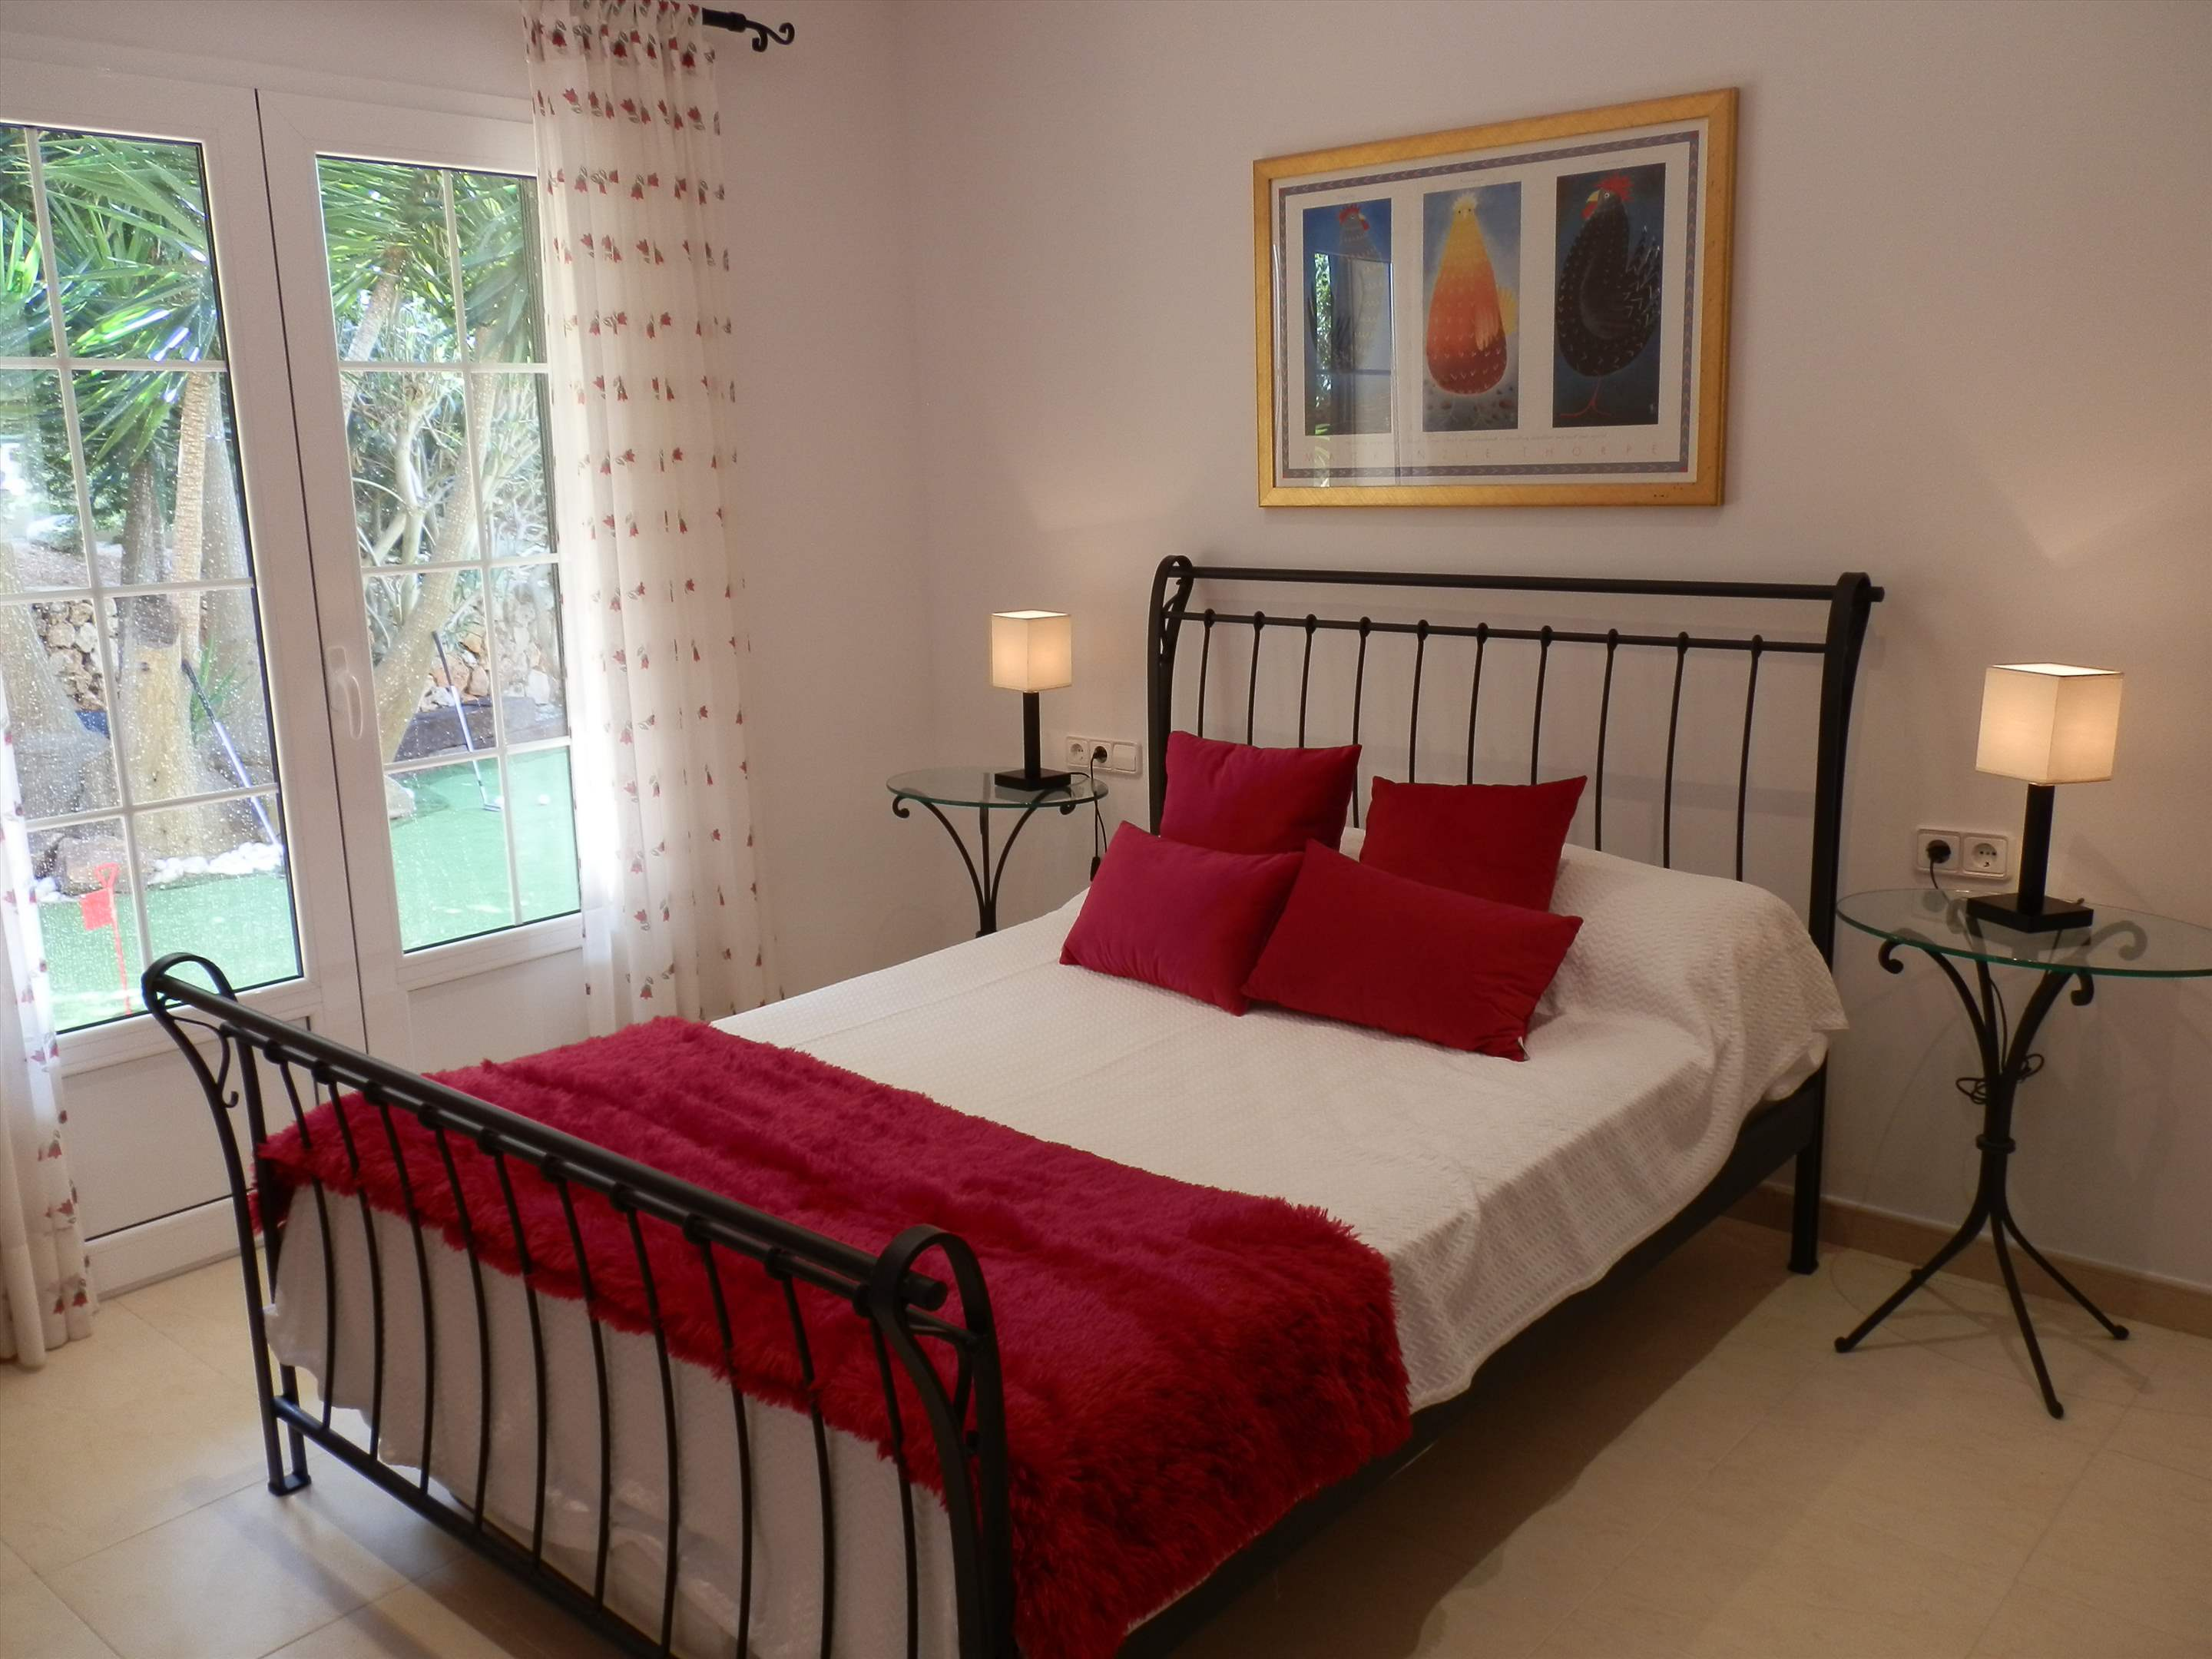 Son De Mar, 5 bedroom villa in Mahon, San Luis & South East, Menorca Photo #29